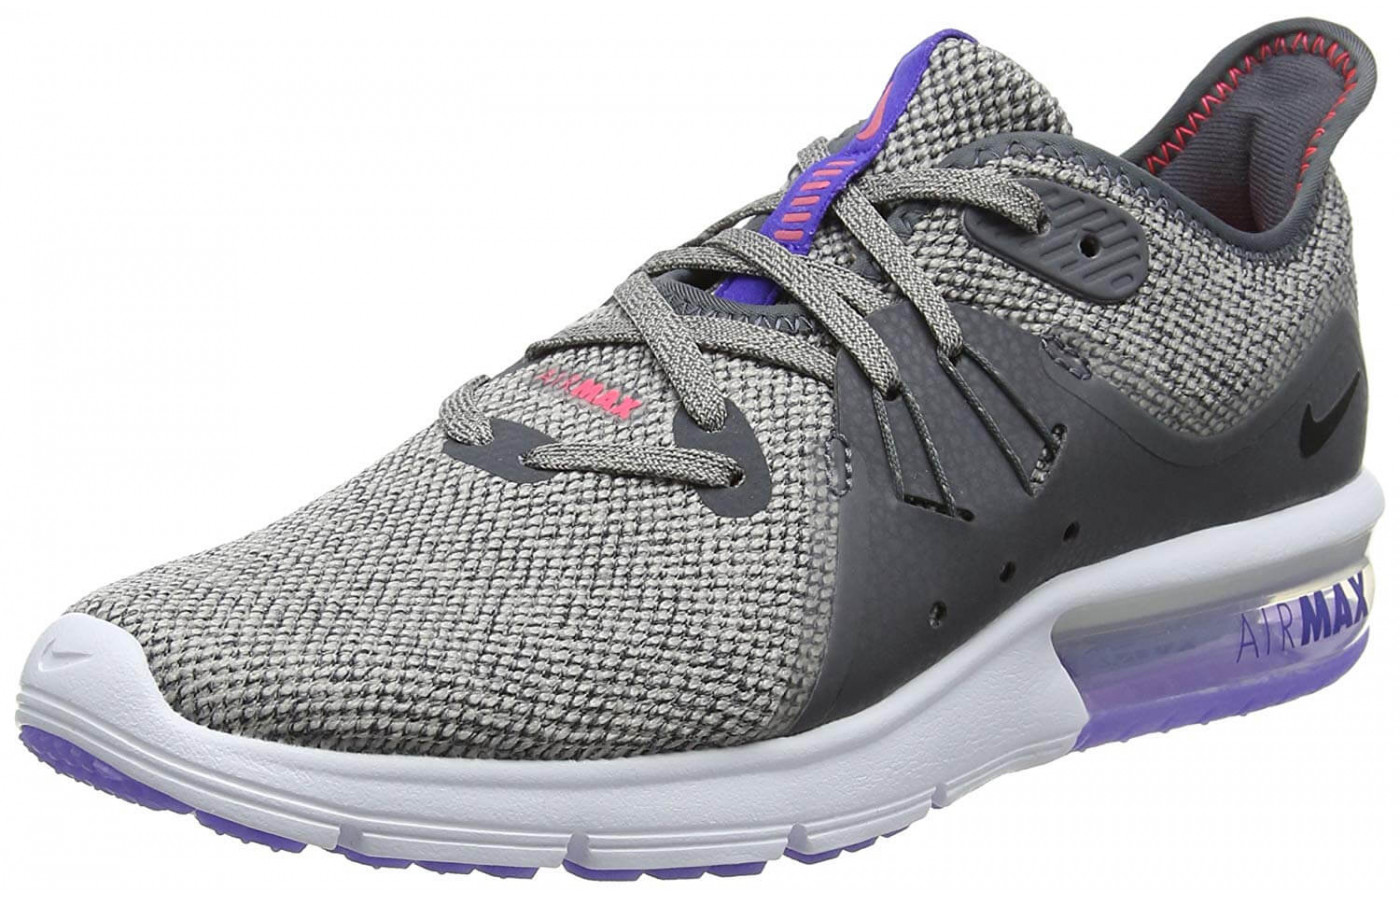 048c791d3fa The Air Max Sequent 3 is available in a number of different colorways ...